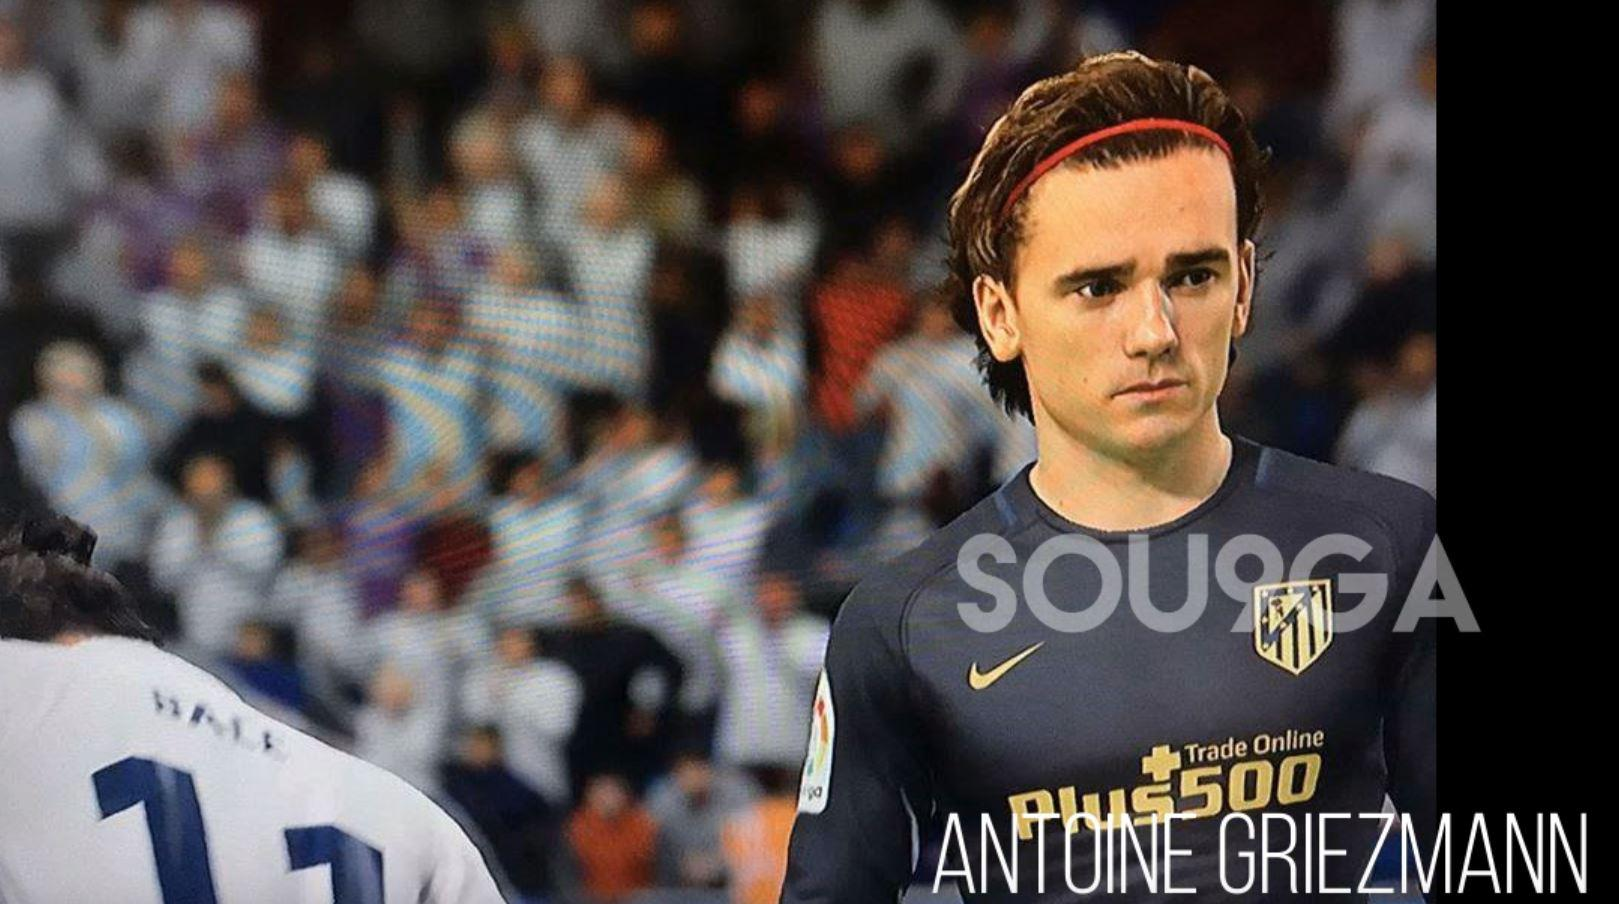 Antoine Griezmann is one of the stars who appears in the leaked FIFA 18 video